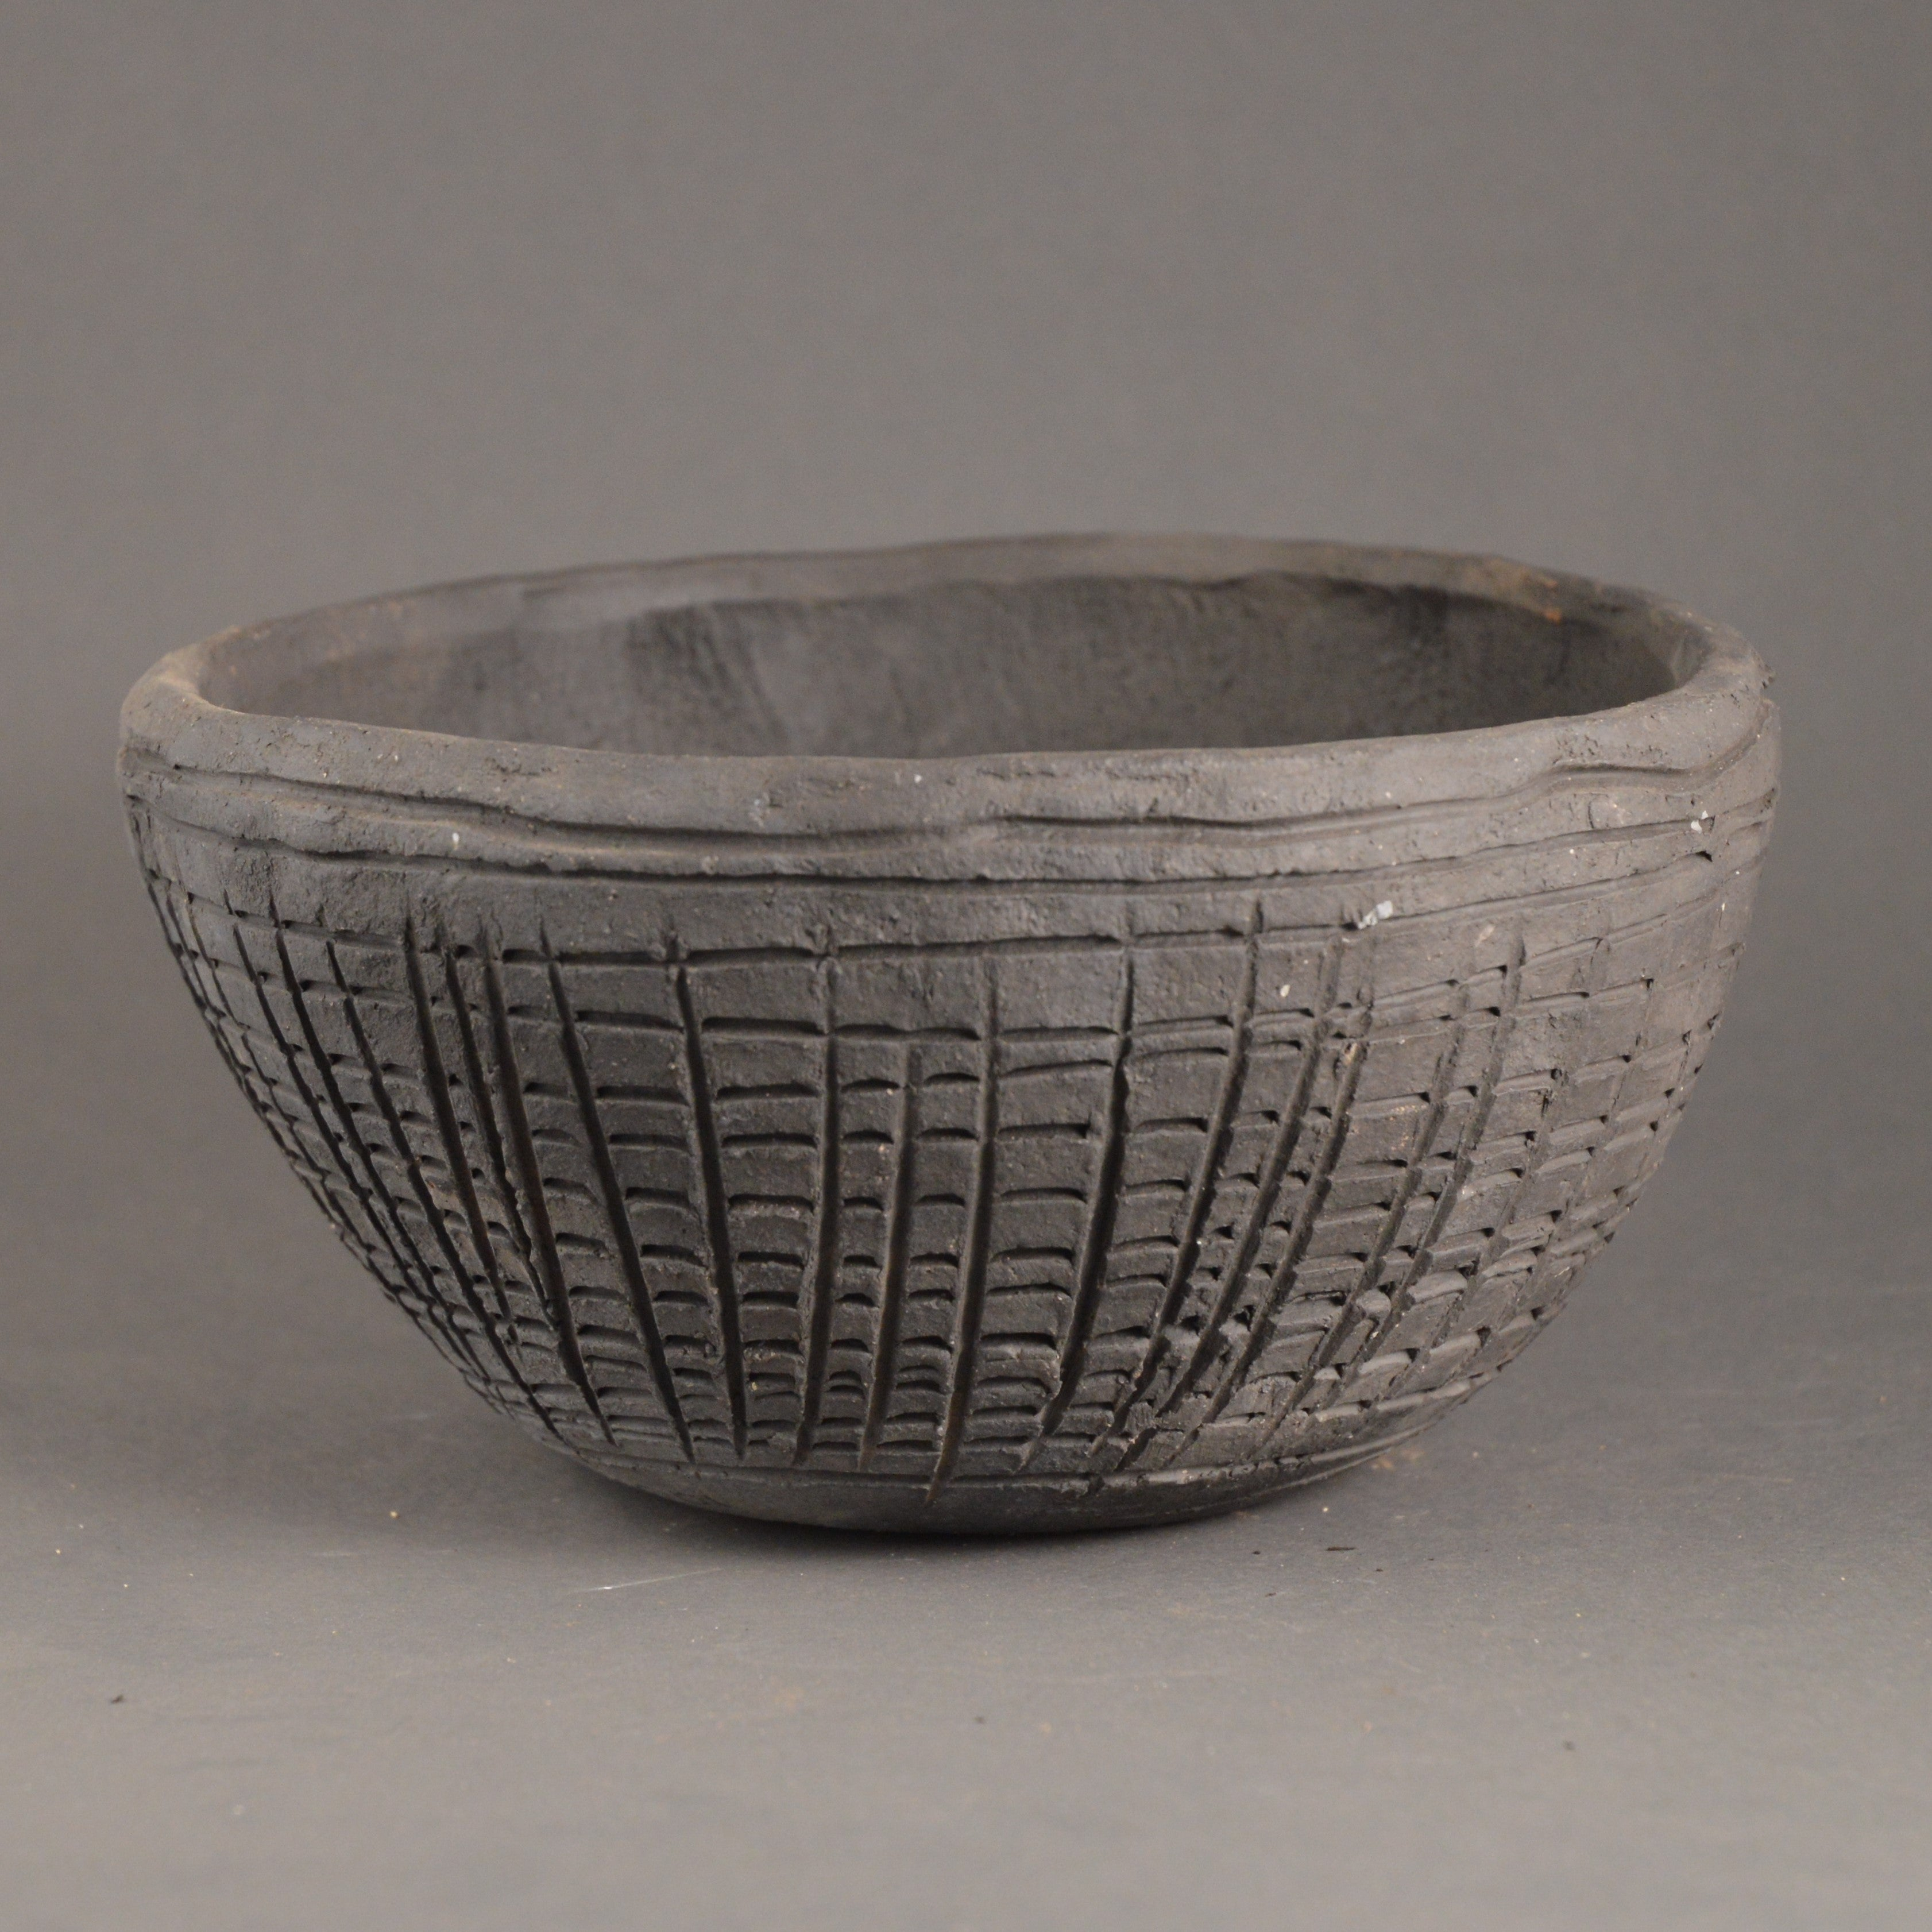 Boyne Valley Grooved Ware Bowl